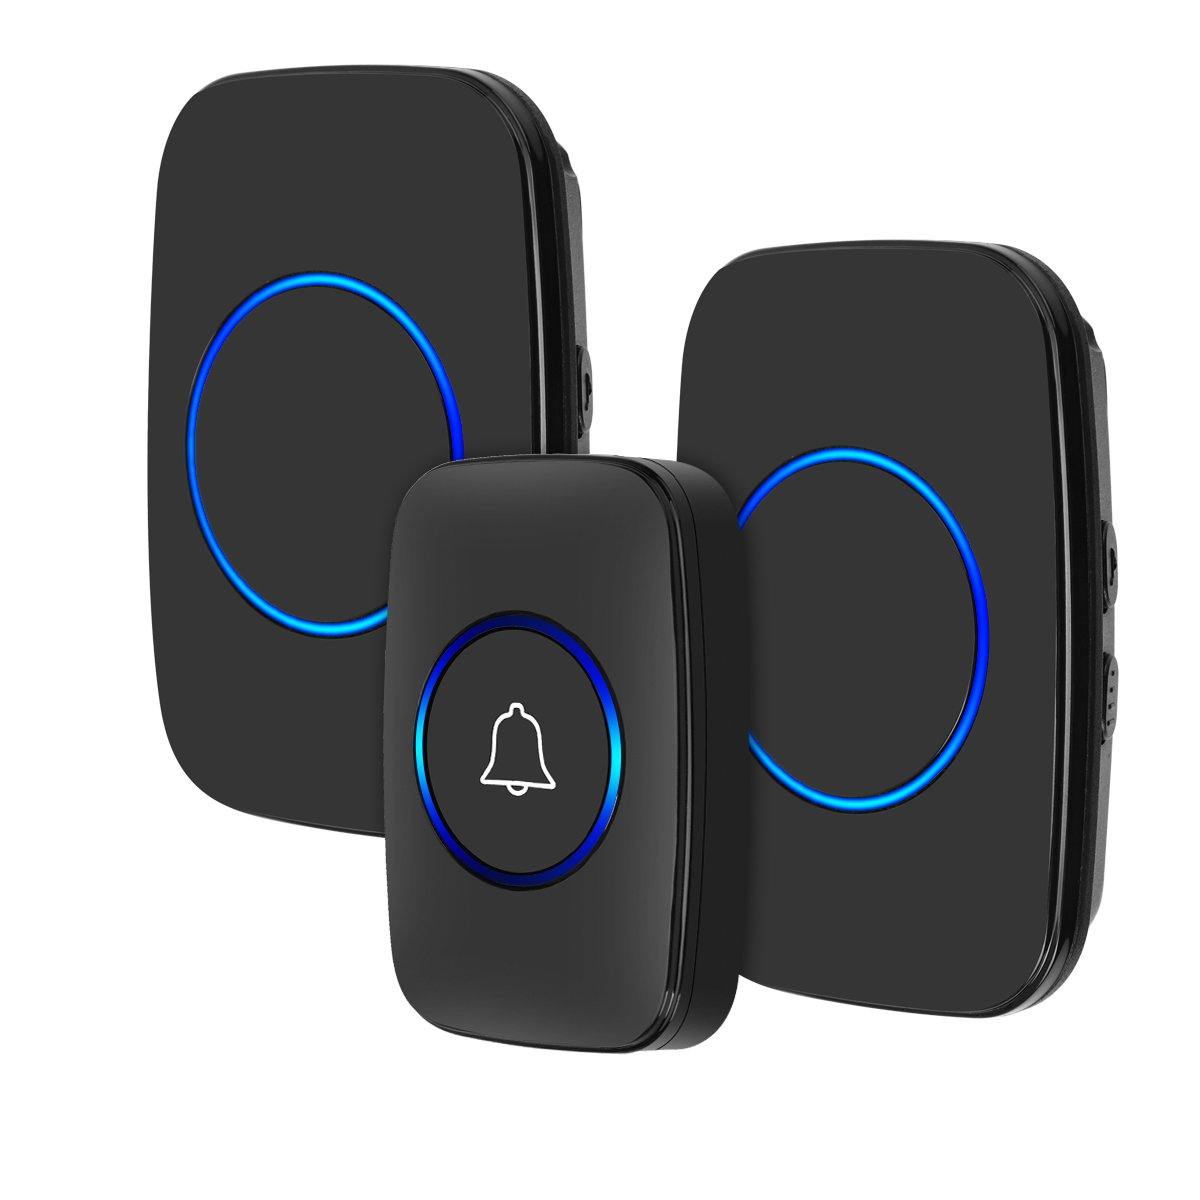 Wireless Doorbell, YIHUNION Waterproof Chime Kit Operated over 1000ft with 1 Remote Button and 2 Plug-in Receivers Operating for Office and Home (1 Transmitter + 2 Receiver (Black))